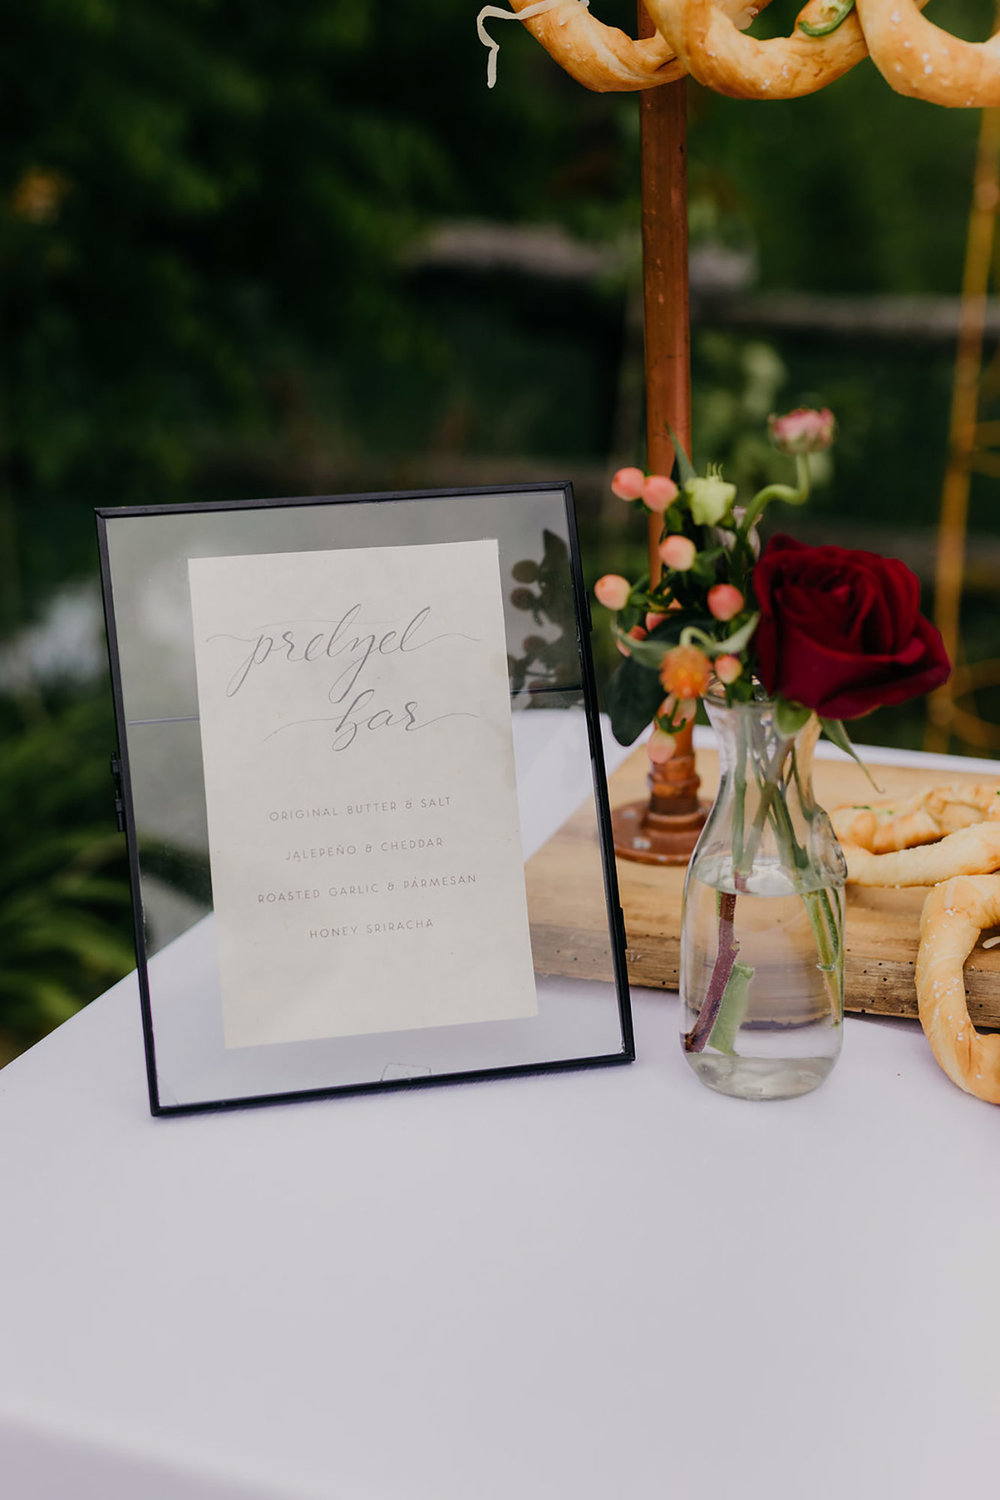 Kurtz-Orchards-Wedding-Niagara-wedding-Vineyard-Bride-Photography-by-Kayla-Rocca-025.JPG